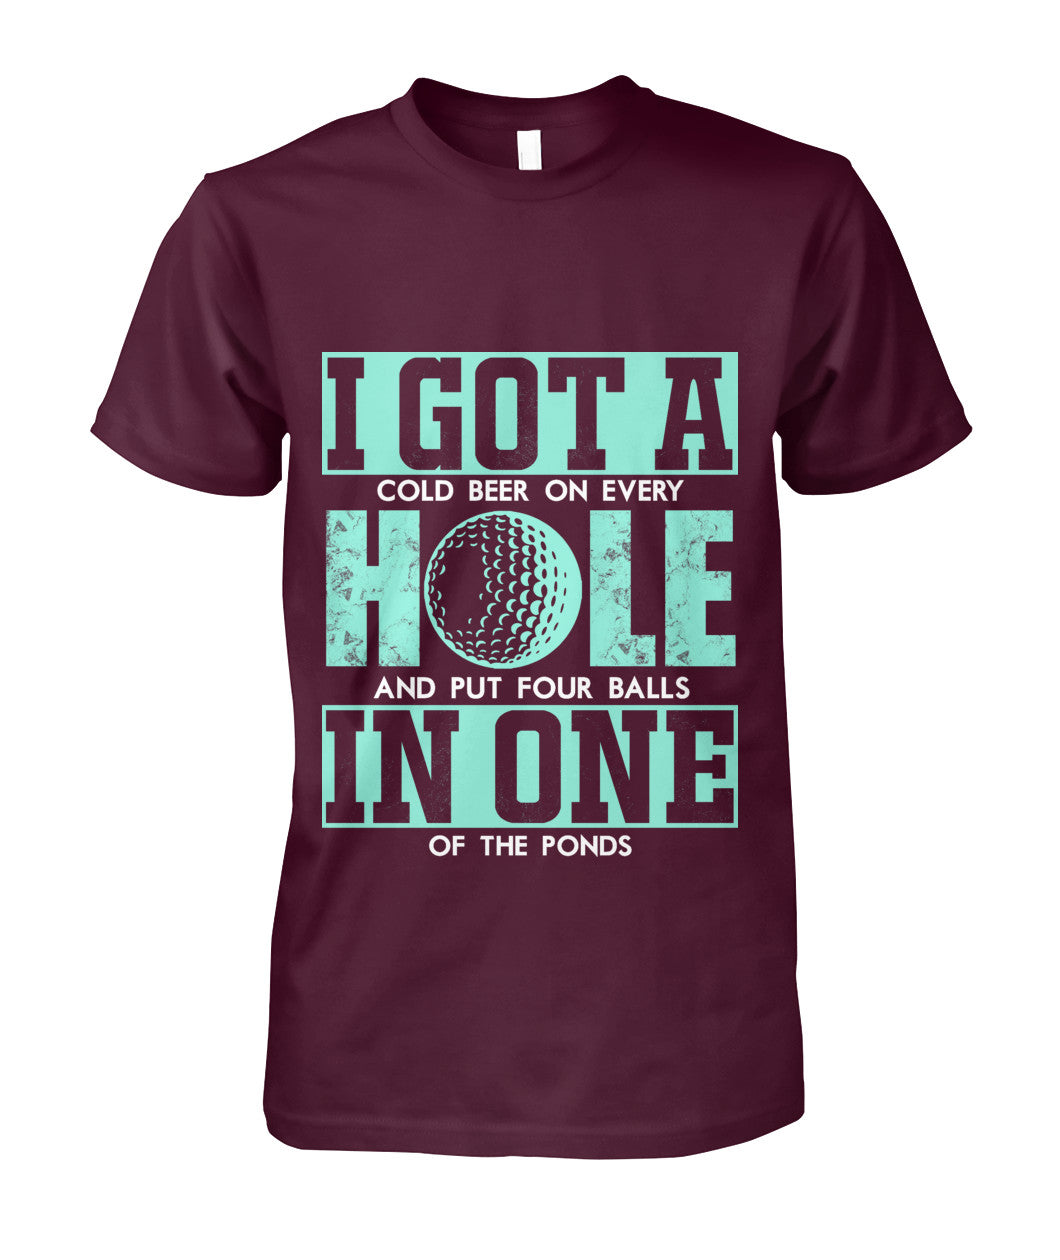 I got a hole in one shirt Unisex Cotton Tee-Short Sleeves - AllGolfUSA.COM